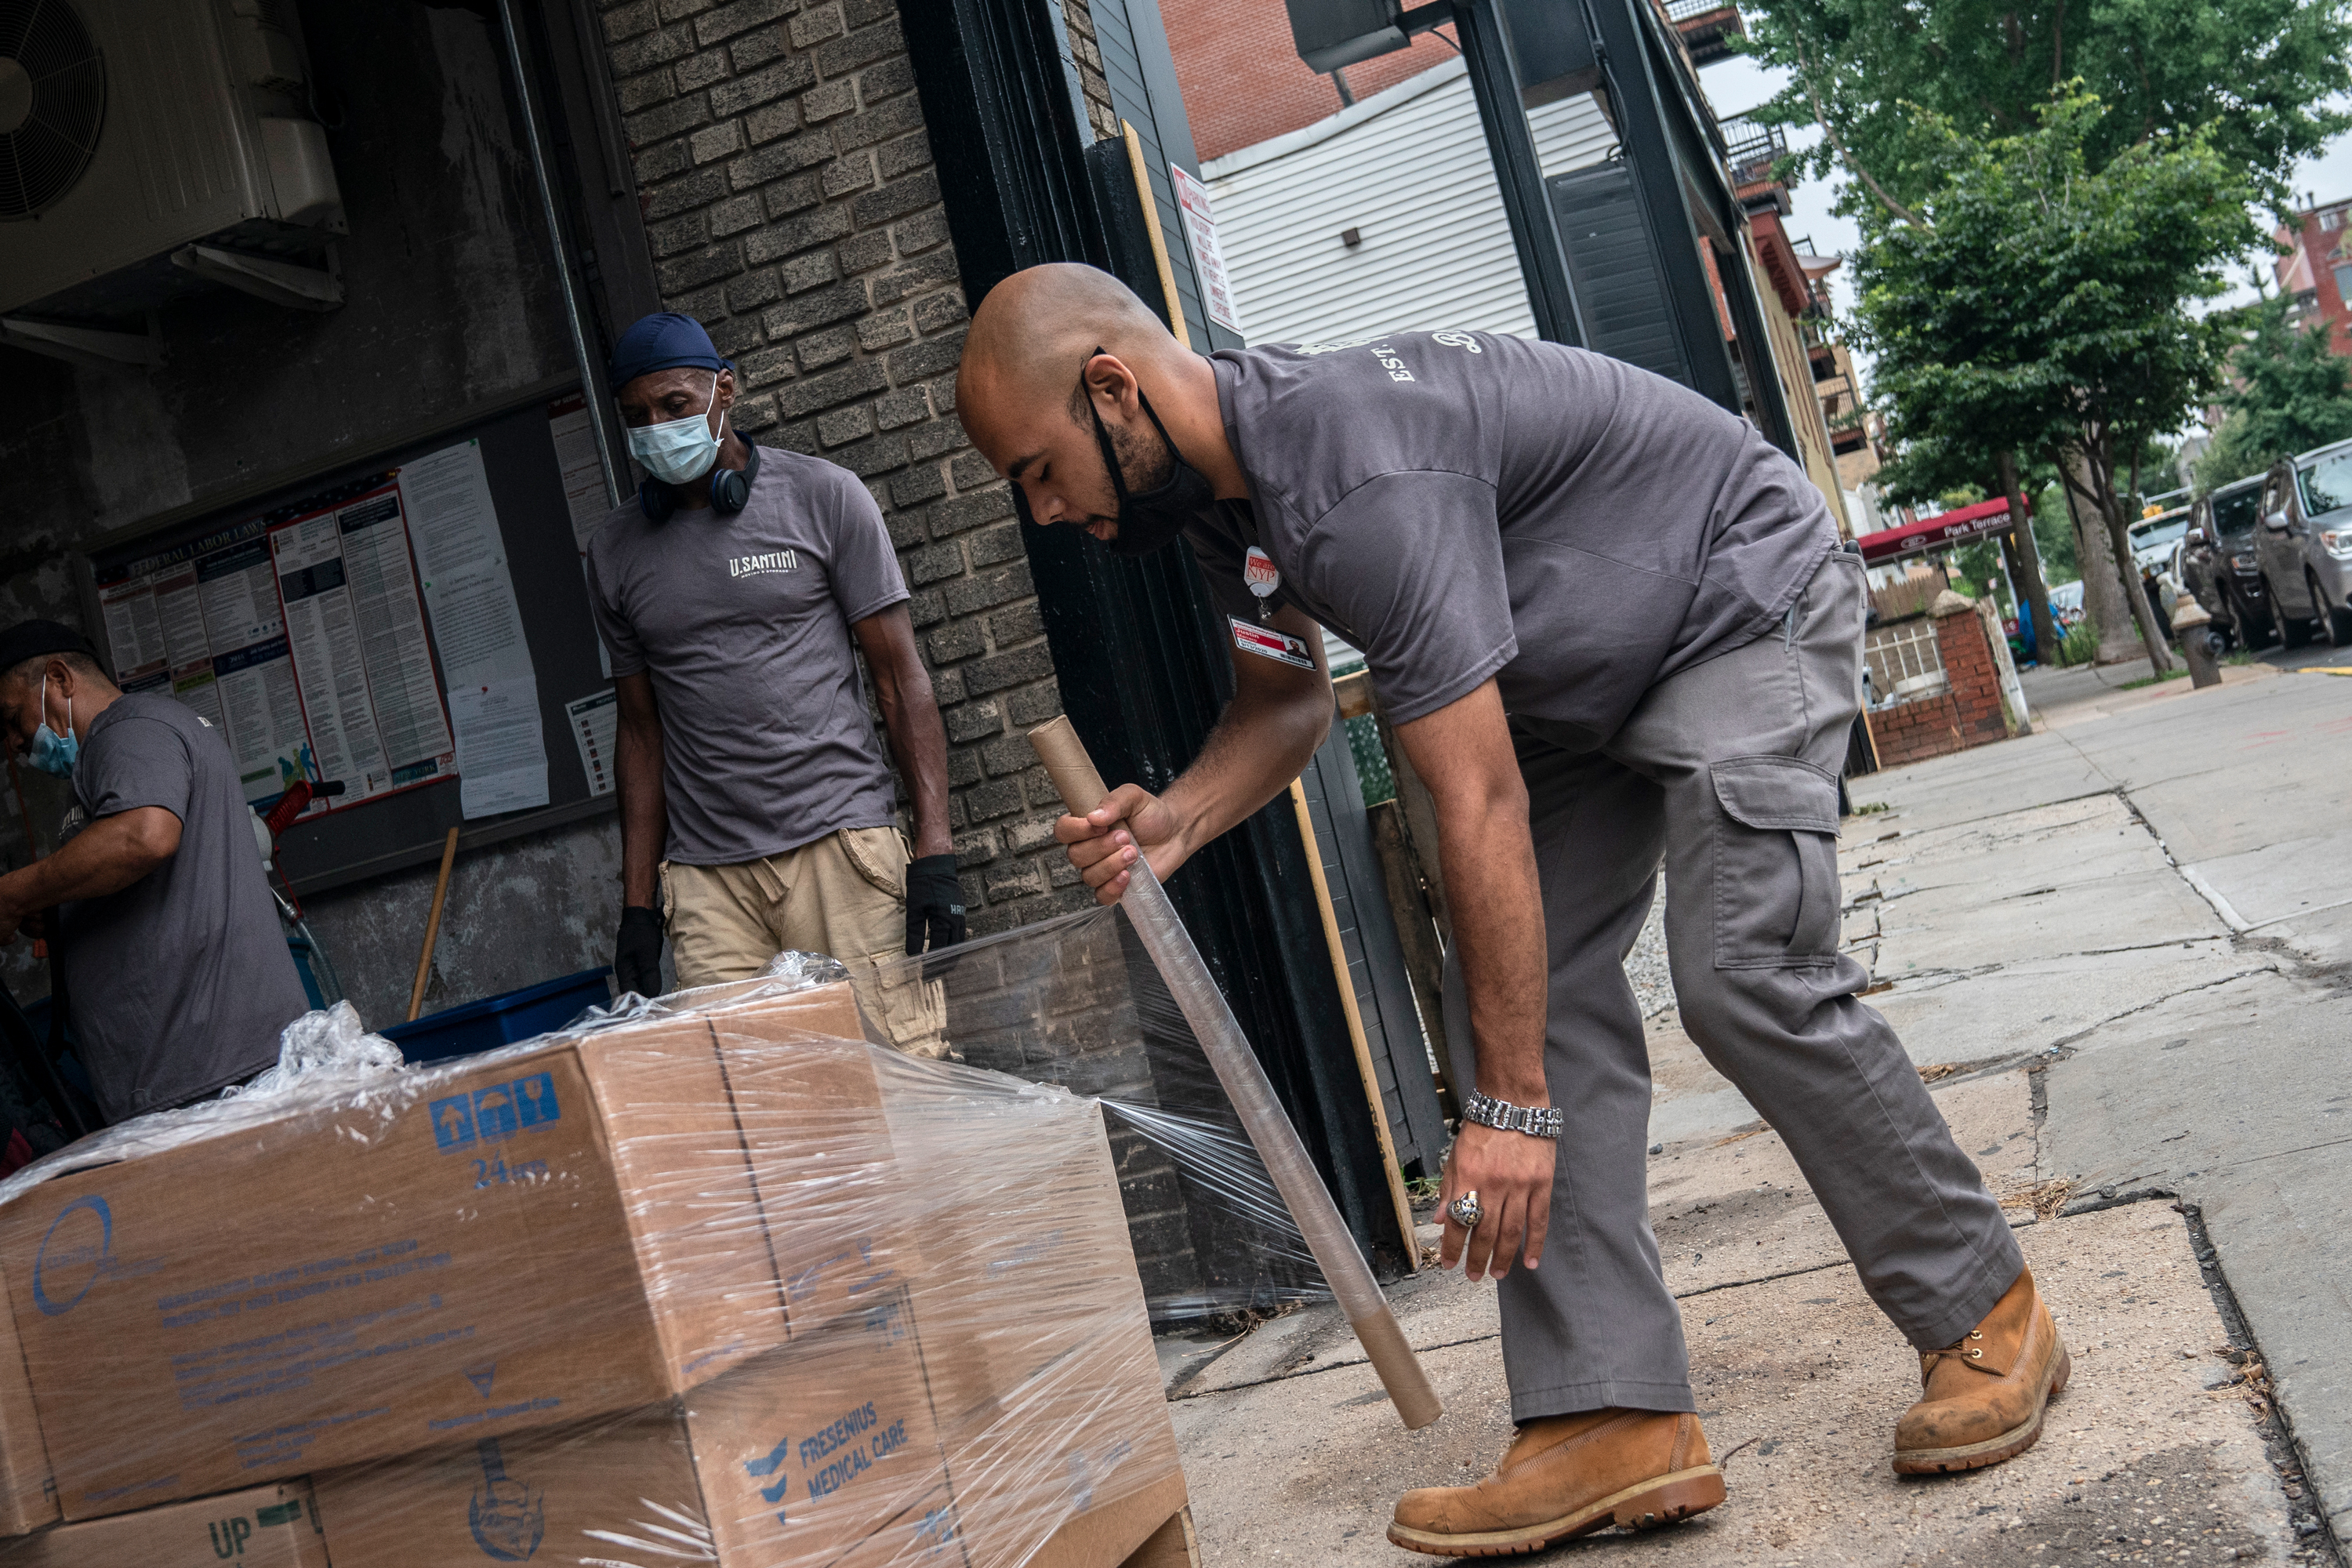 Santini Moving & Storage employees wrap boxes at their Park Slope warehouse, July 24, 2020.